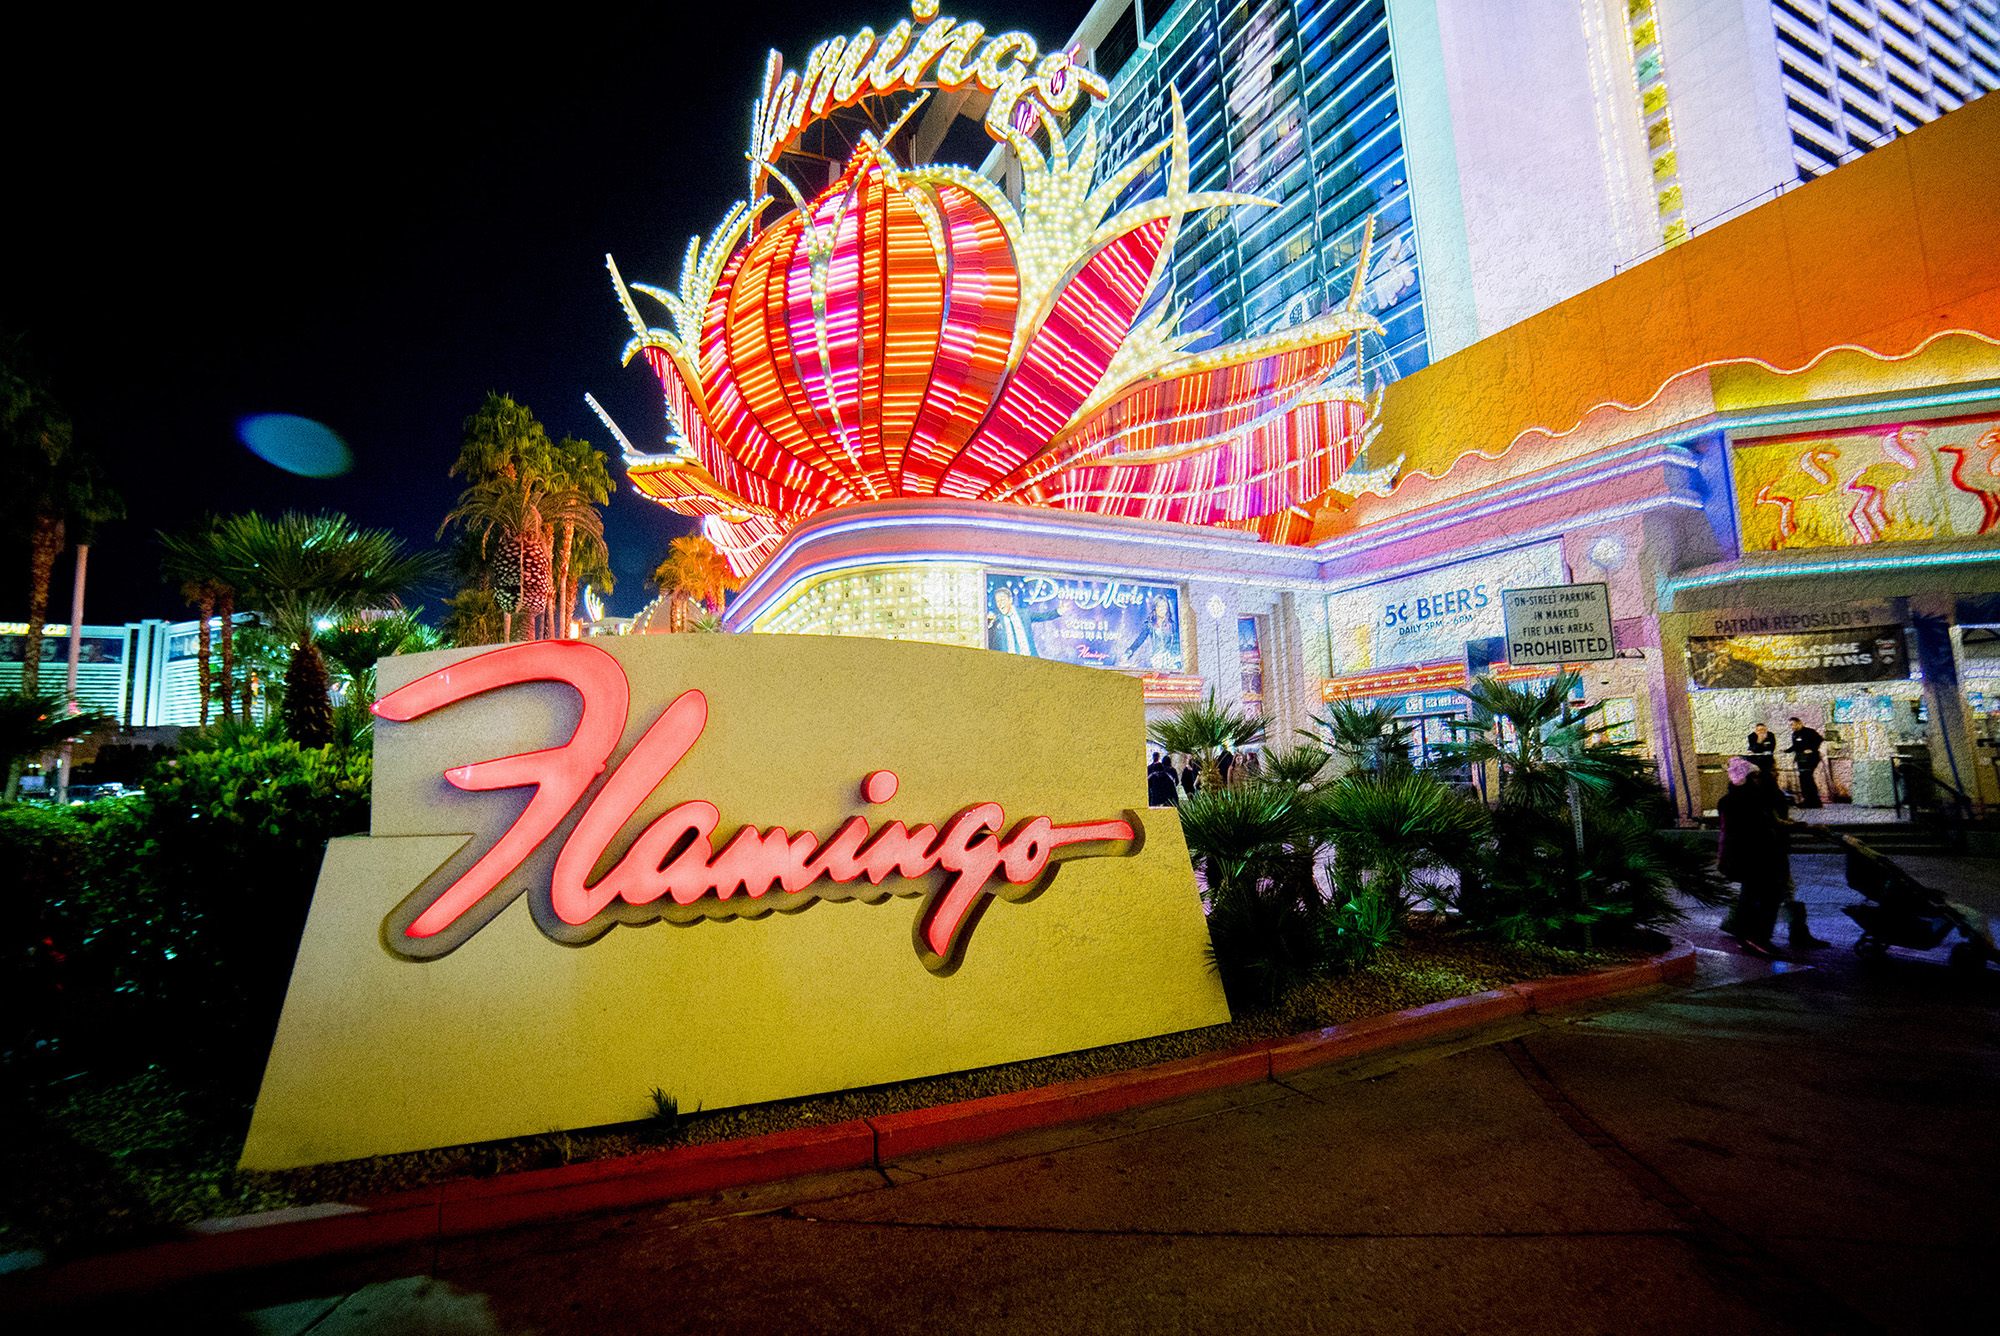 The neon flower outside the Flamingo casino has heralded good times for decades, except for some that never leave